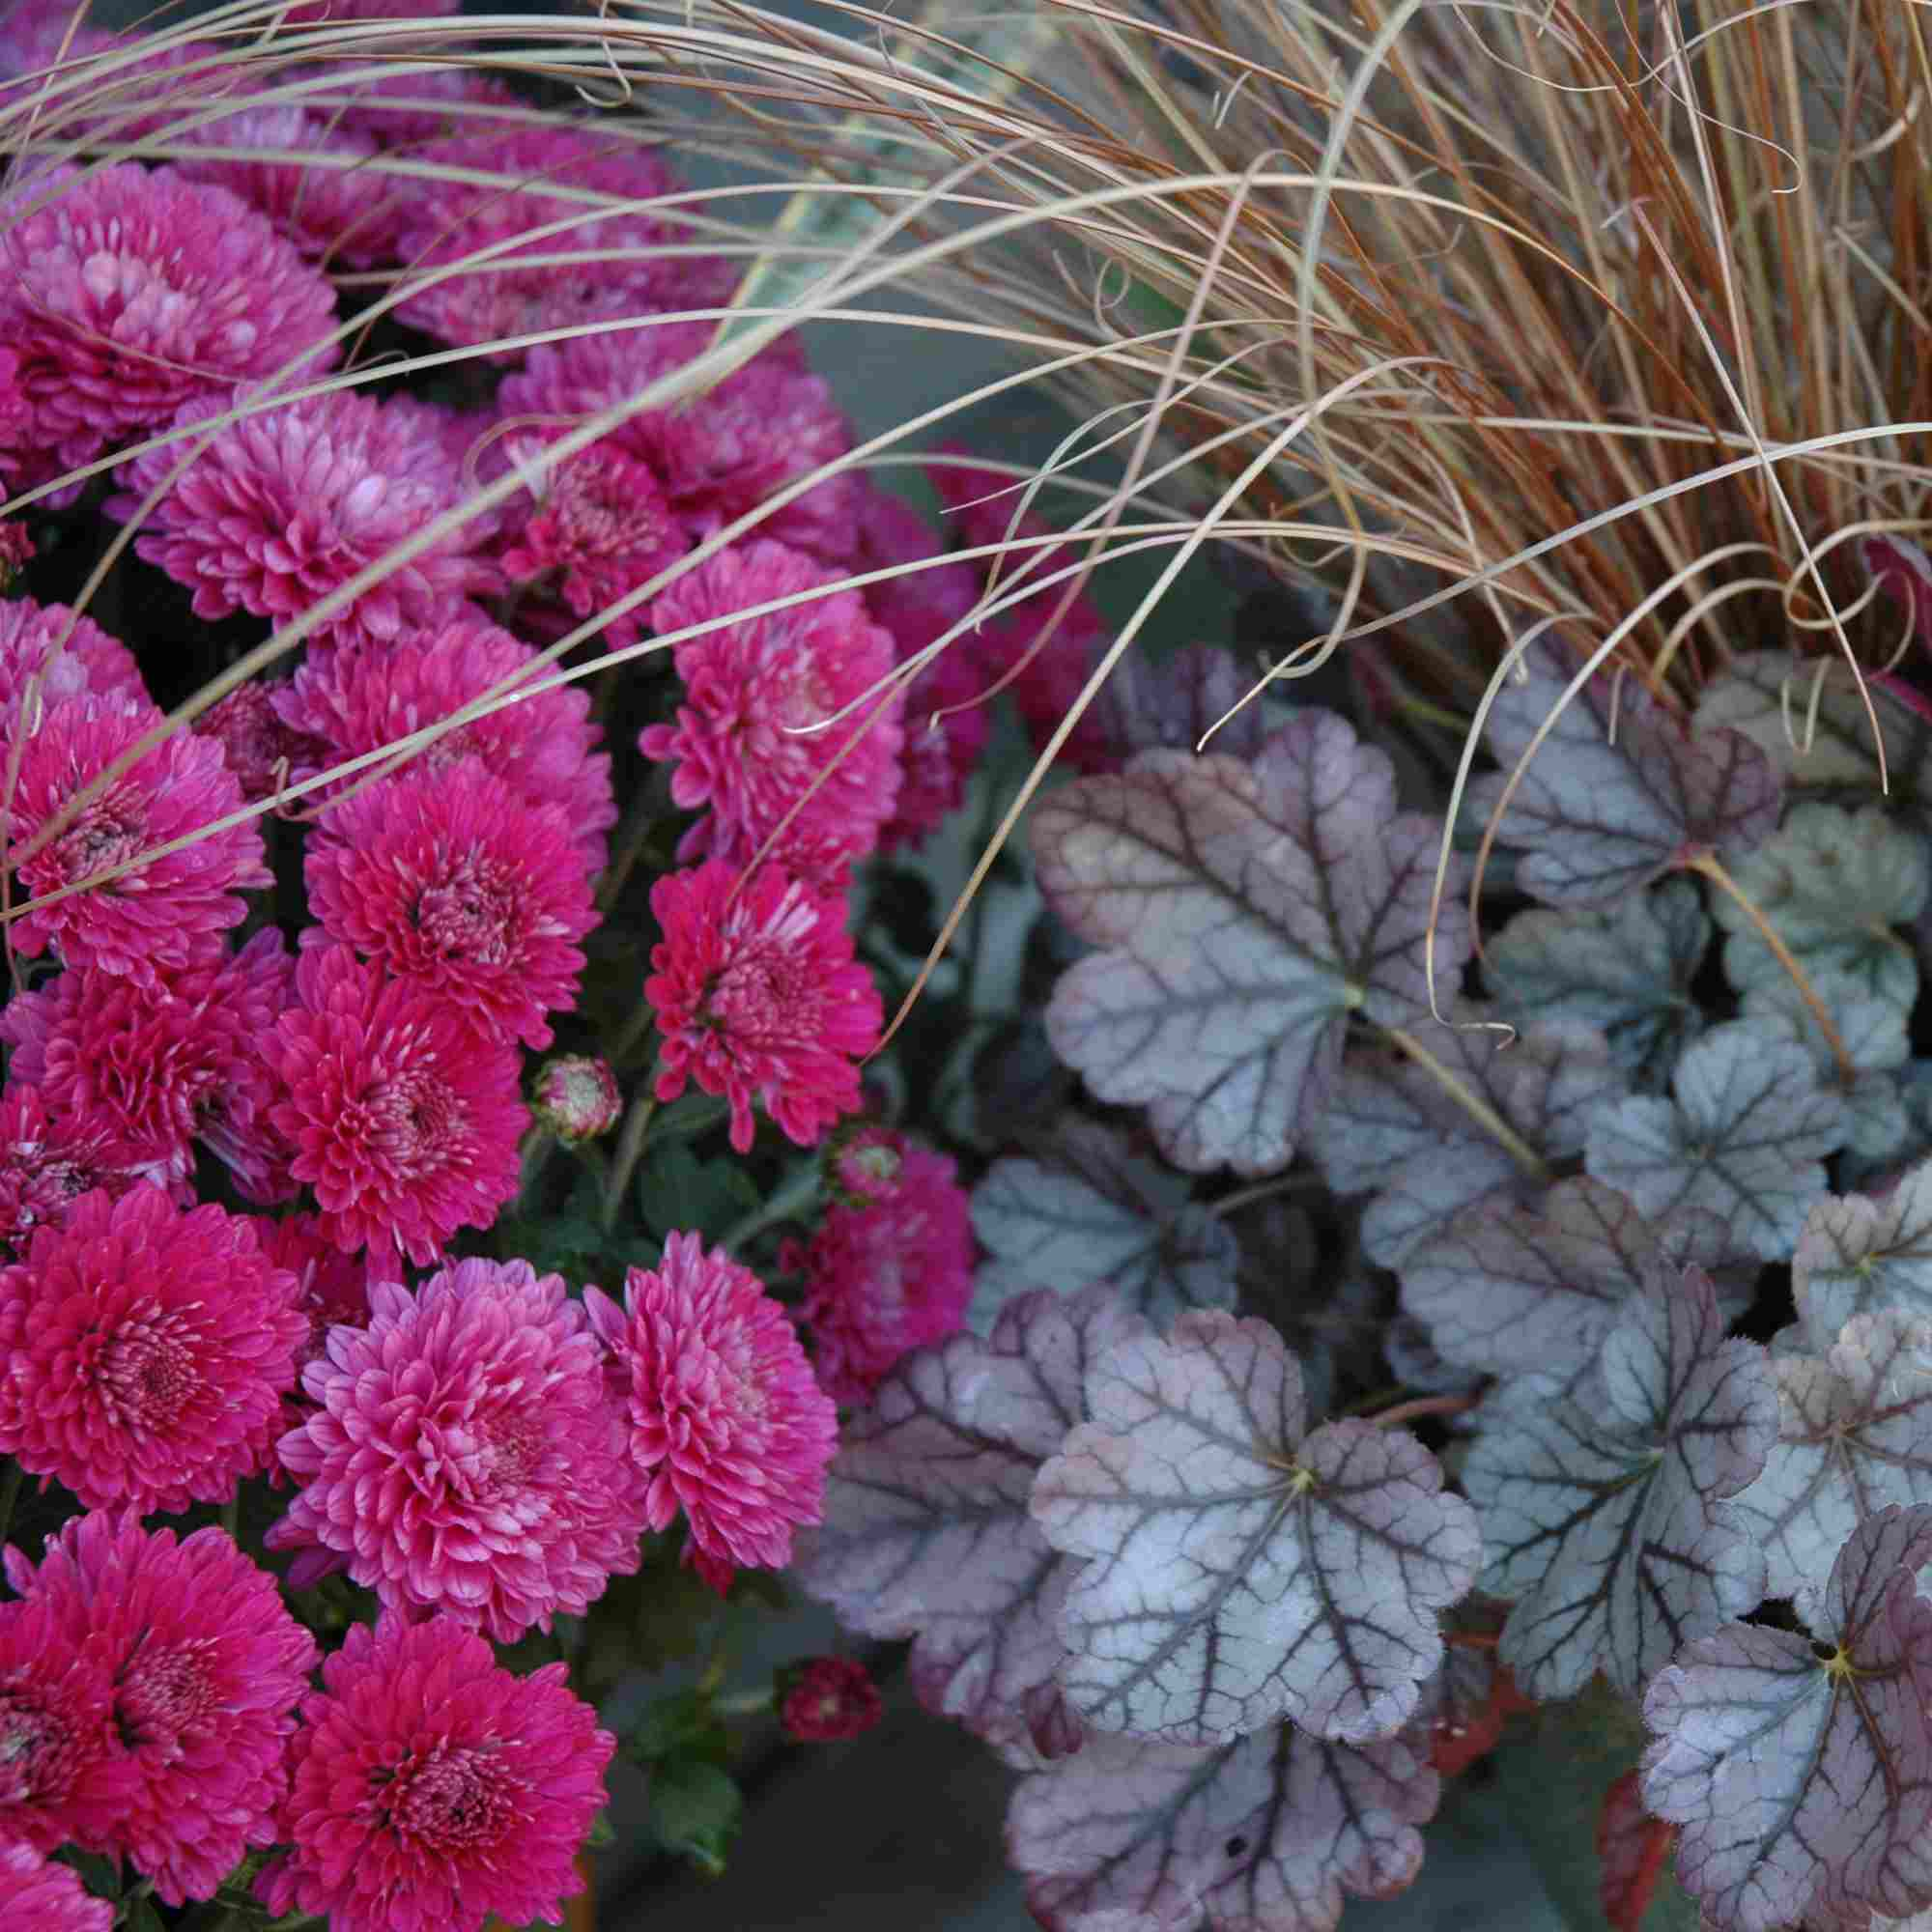 Coral bells, toffee twist sedge, and pink mum in a fall container garden